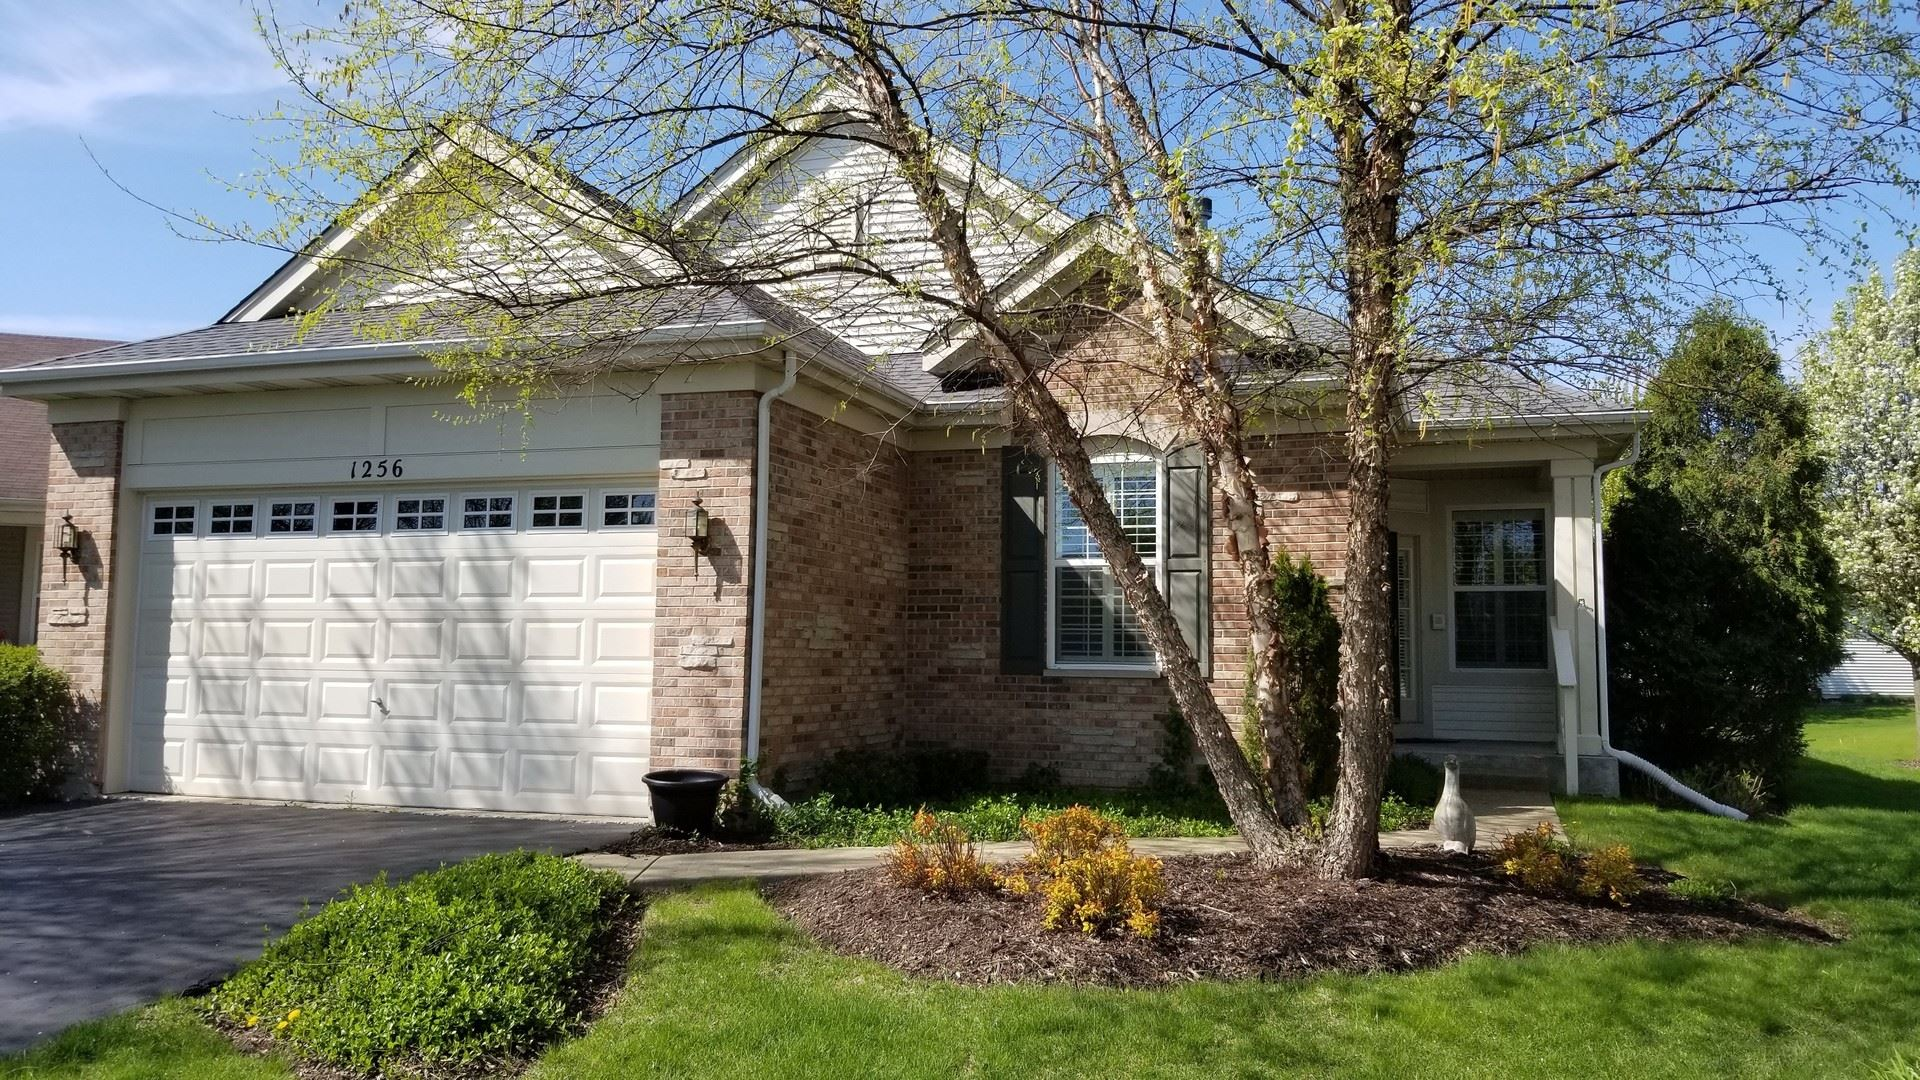 1256 York Court, Aurora, IL 60502 - #: 10663473